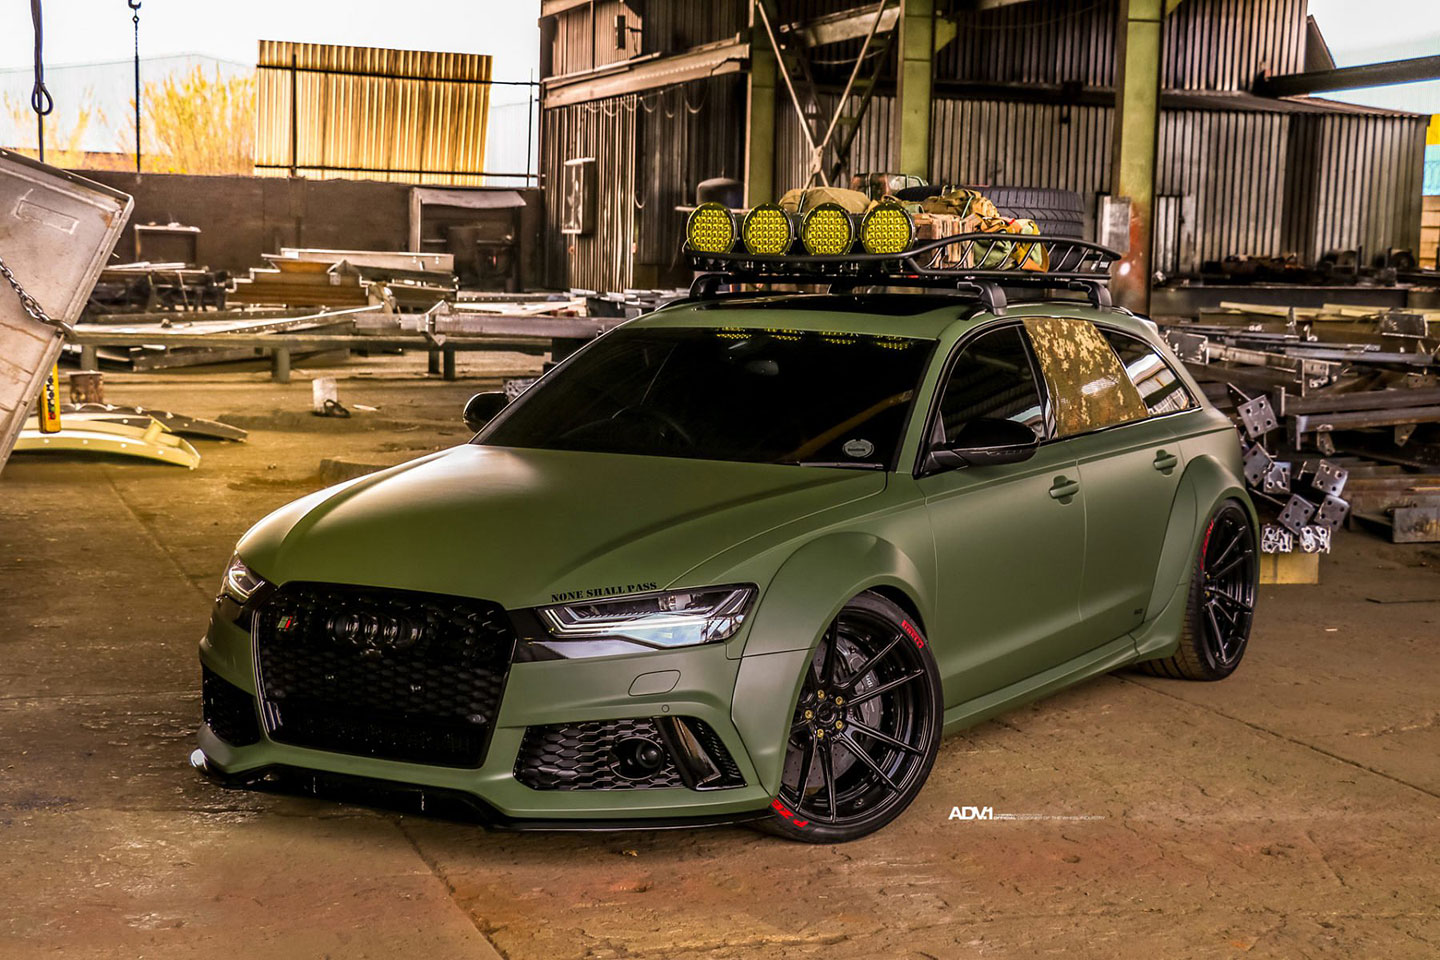 Race! painted the car body matte green that looks perfect together with the new large-diameter ADV.1 wheels